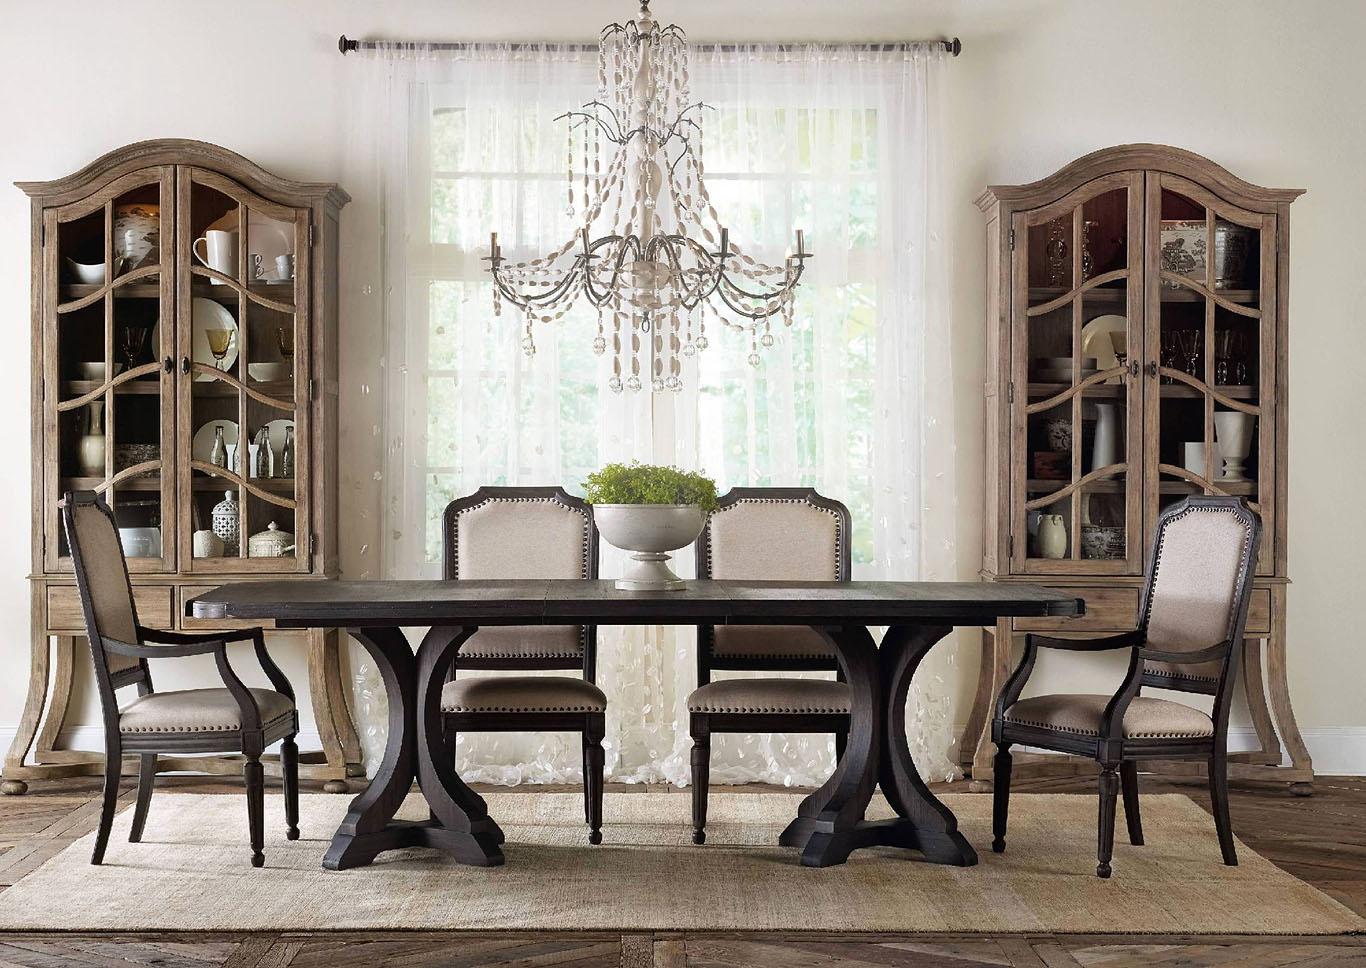 Groovy Ivan Smith Corsica Rectangle Pedestal Dining Table W 2 20 Cjindustries Chair Design For Home Cjindustriesco